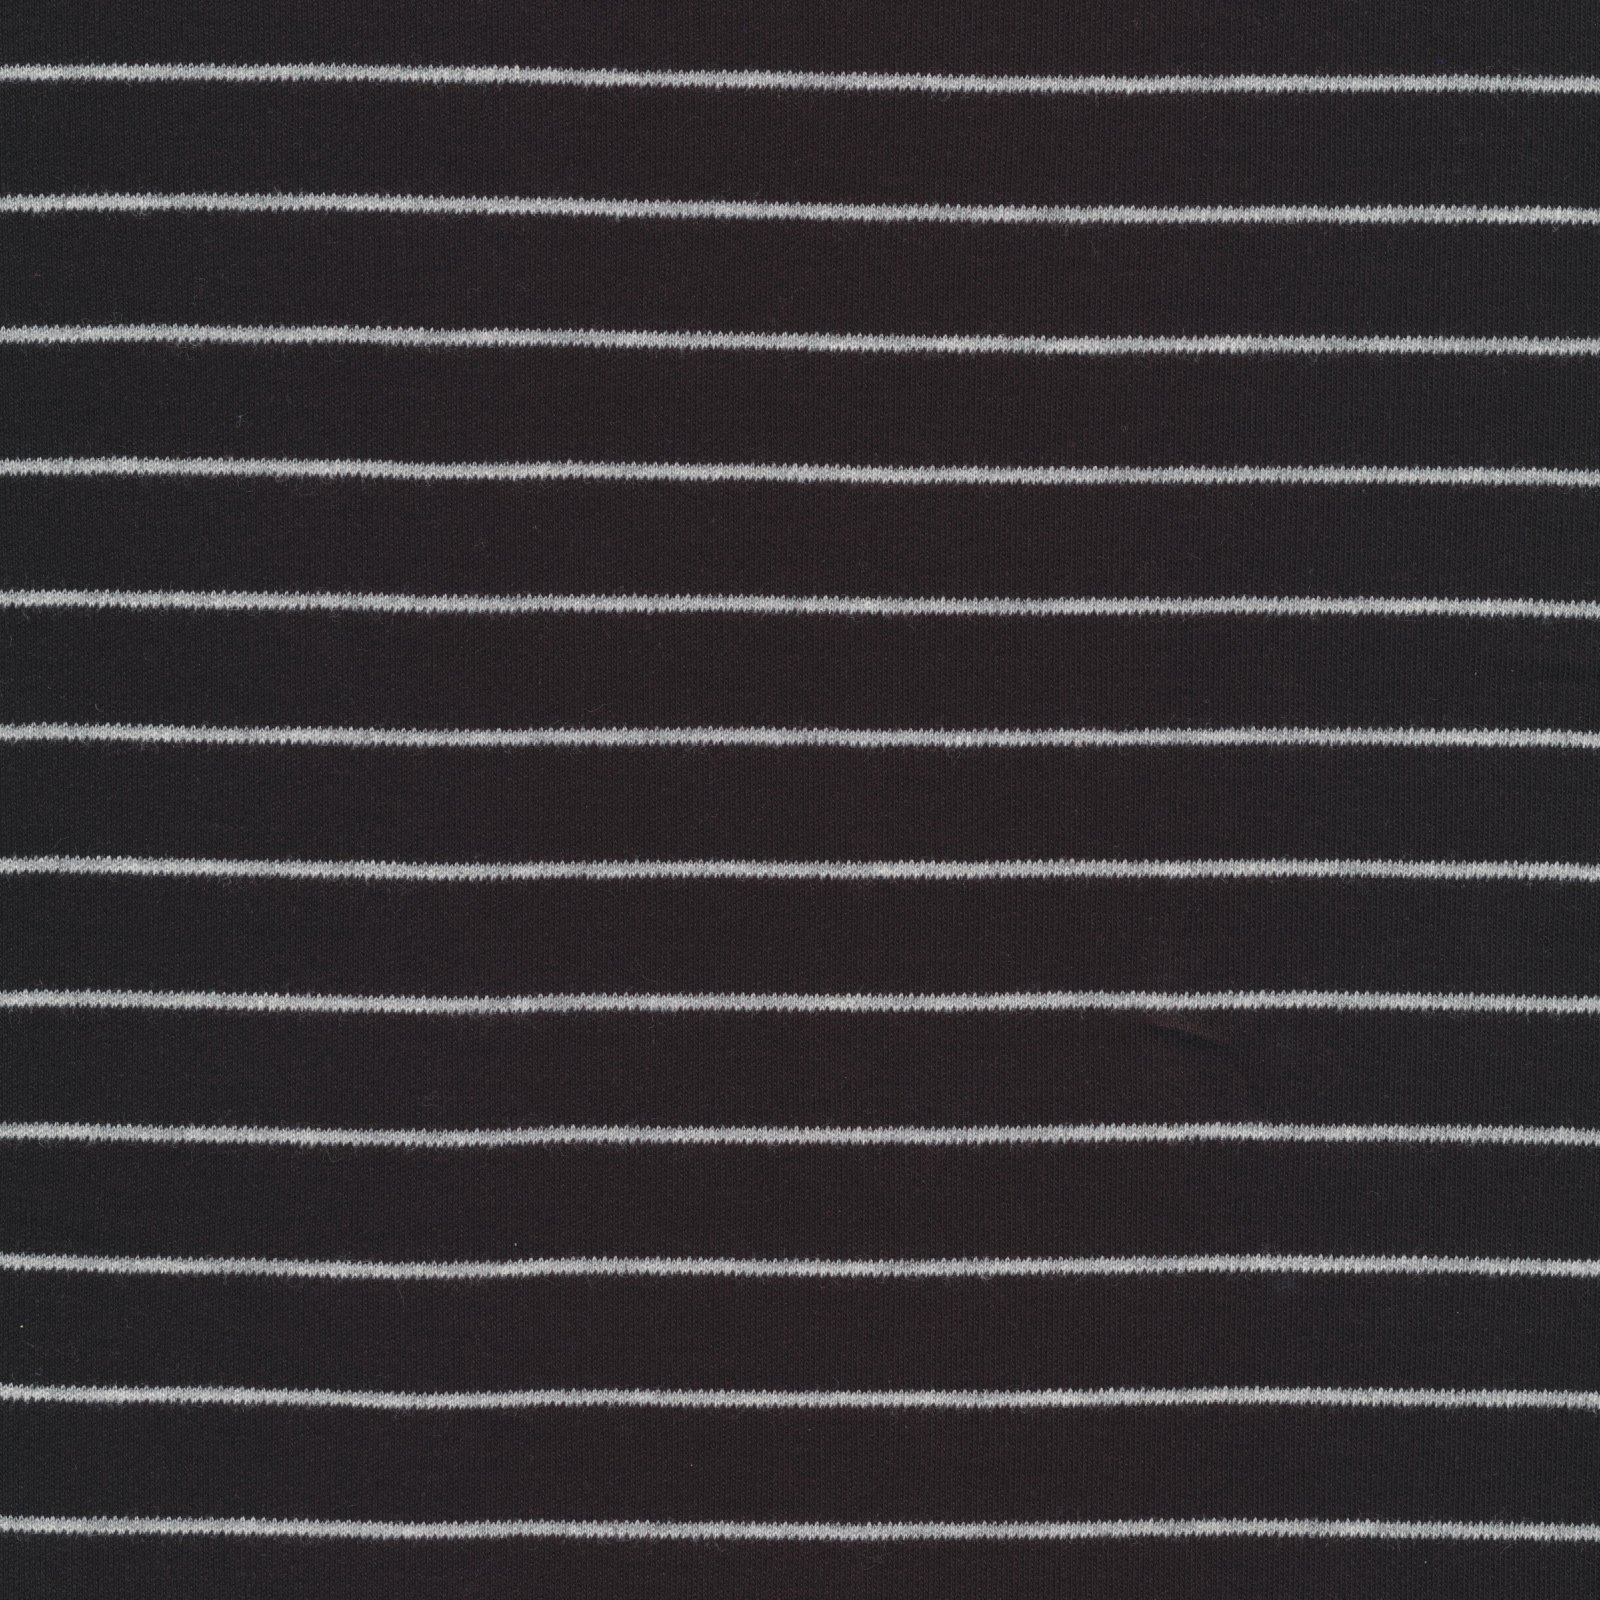 Cloud 9 Organic Knit - Black & Grey Stripes